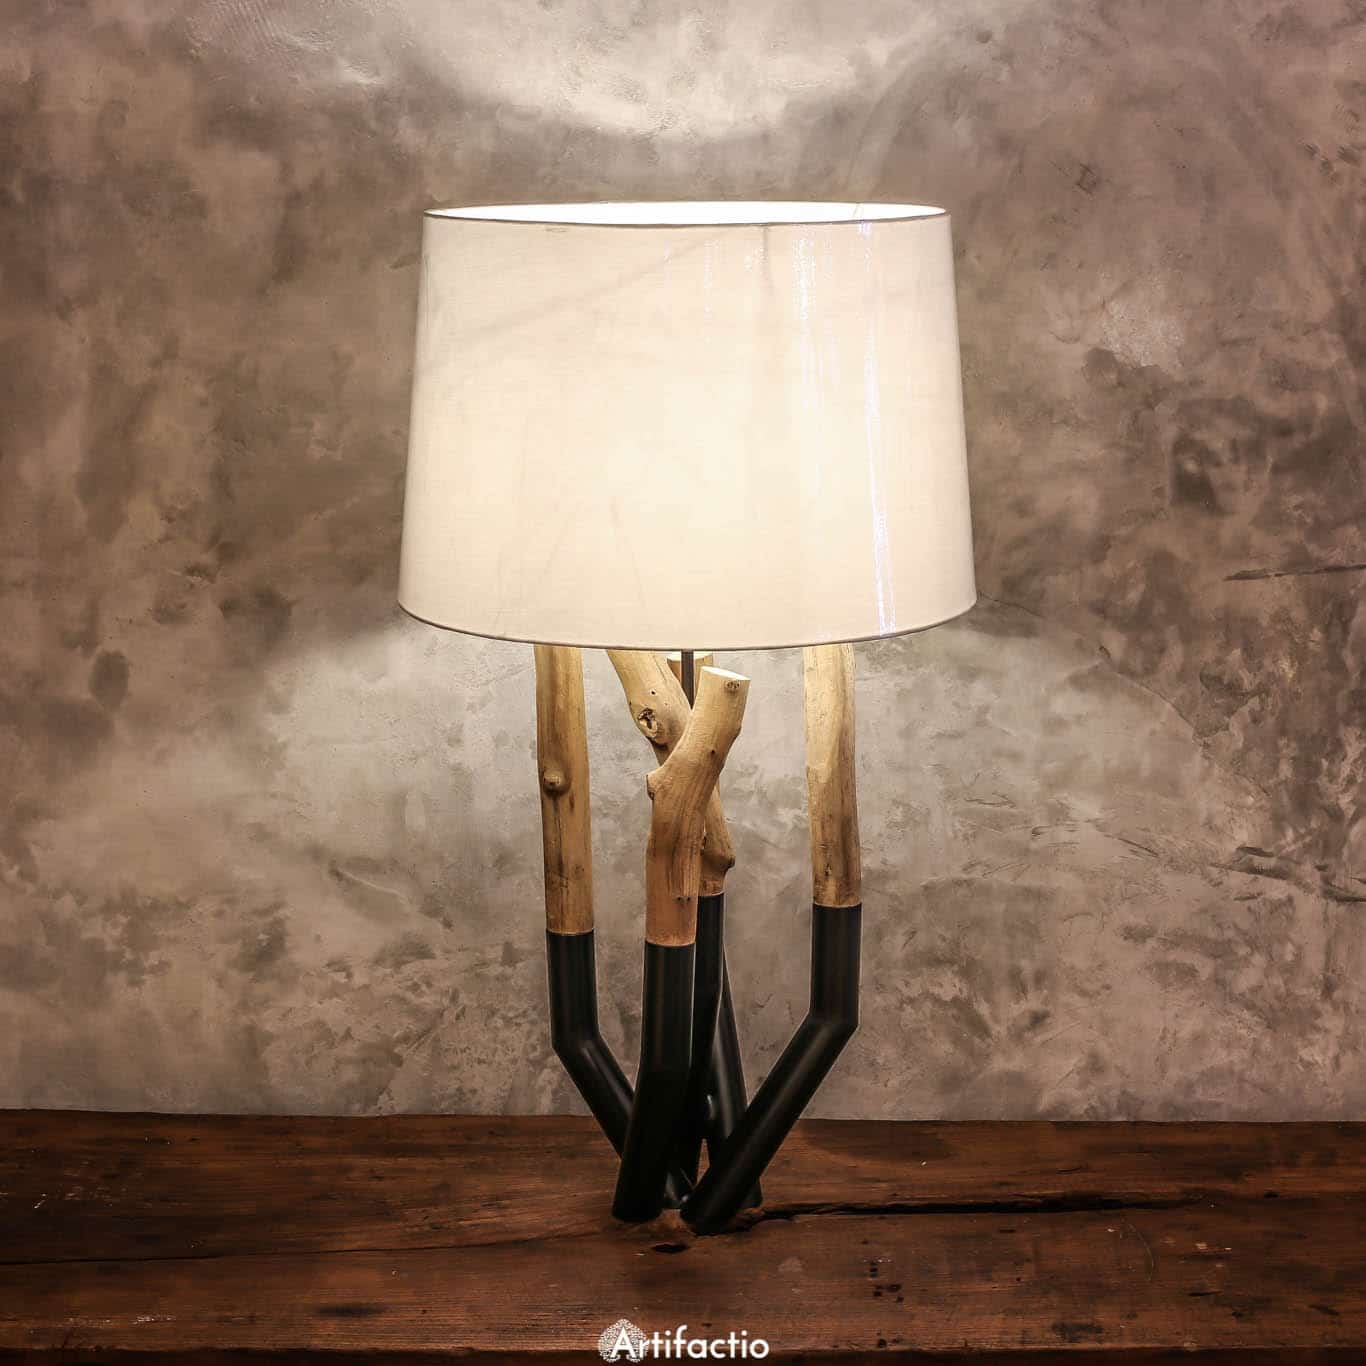 Unique Handmade Metal And Driftwood Table Lamp O Artifactio